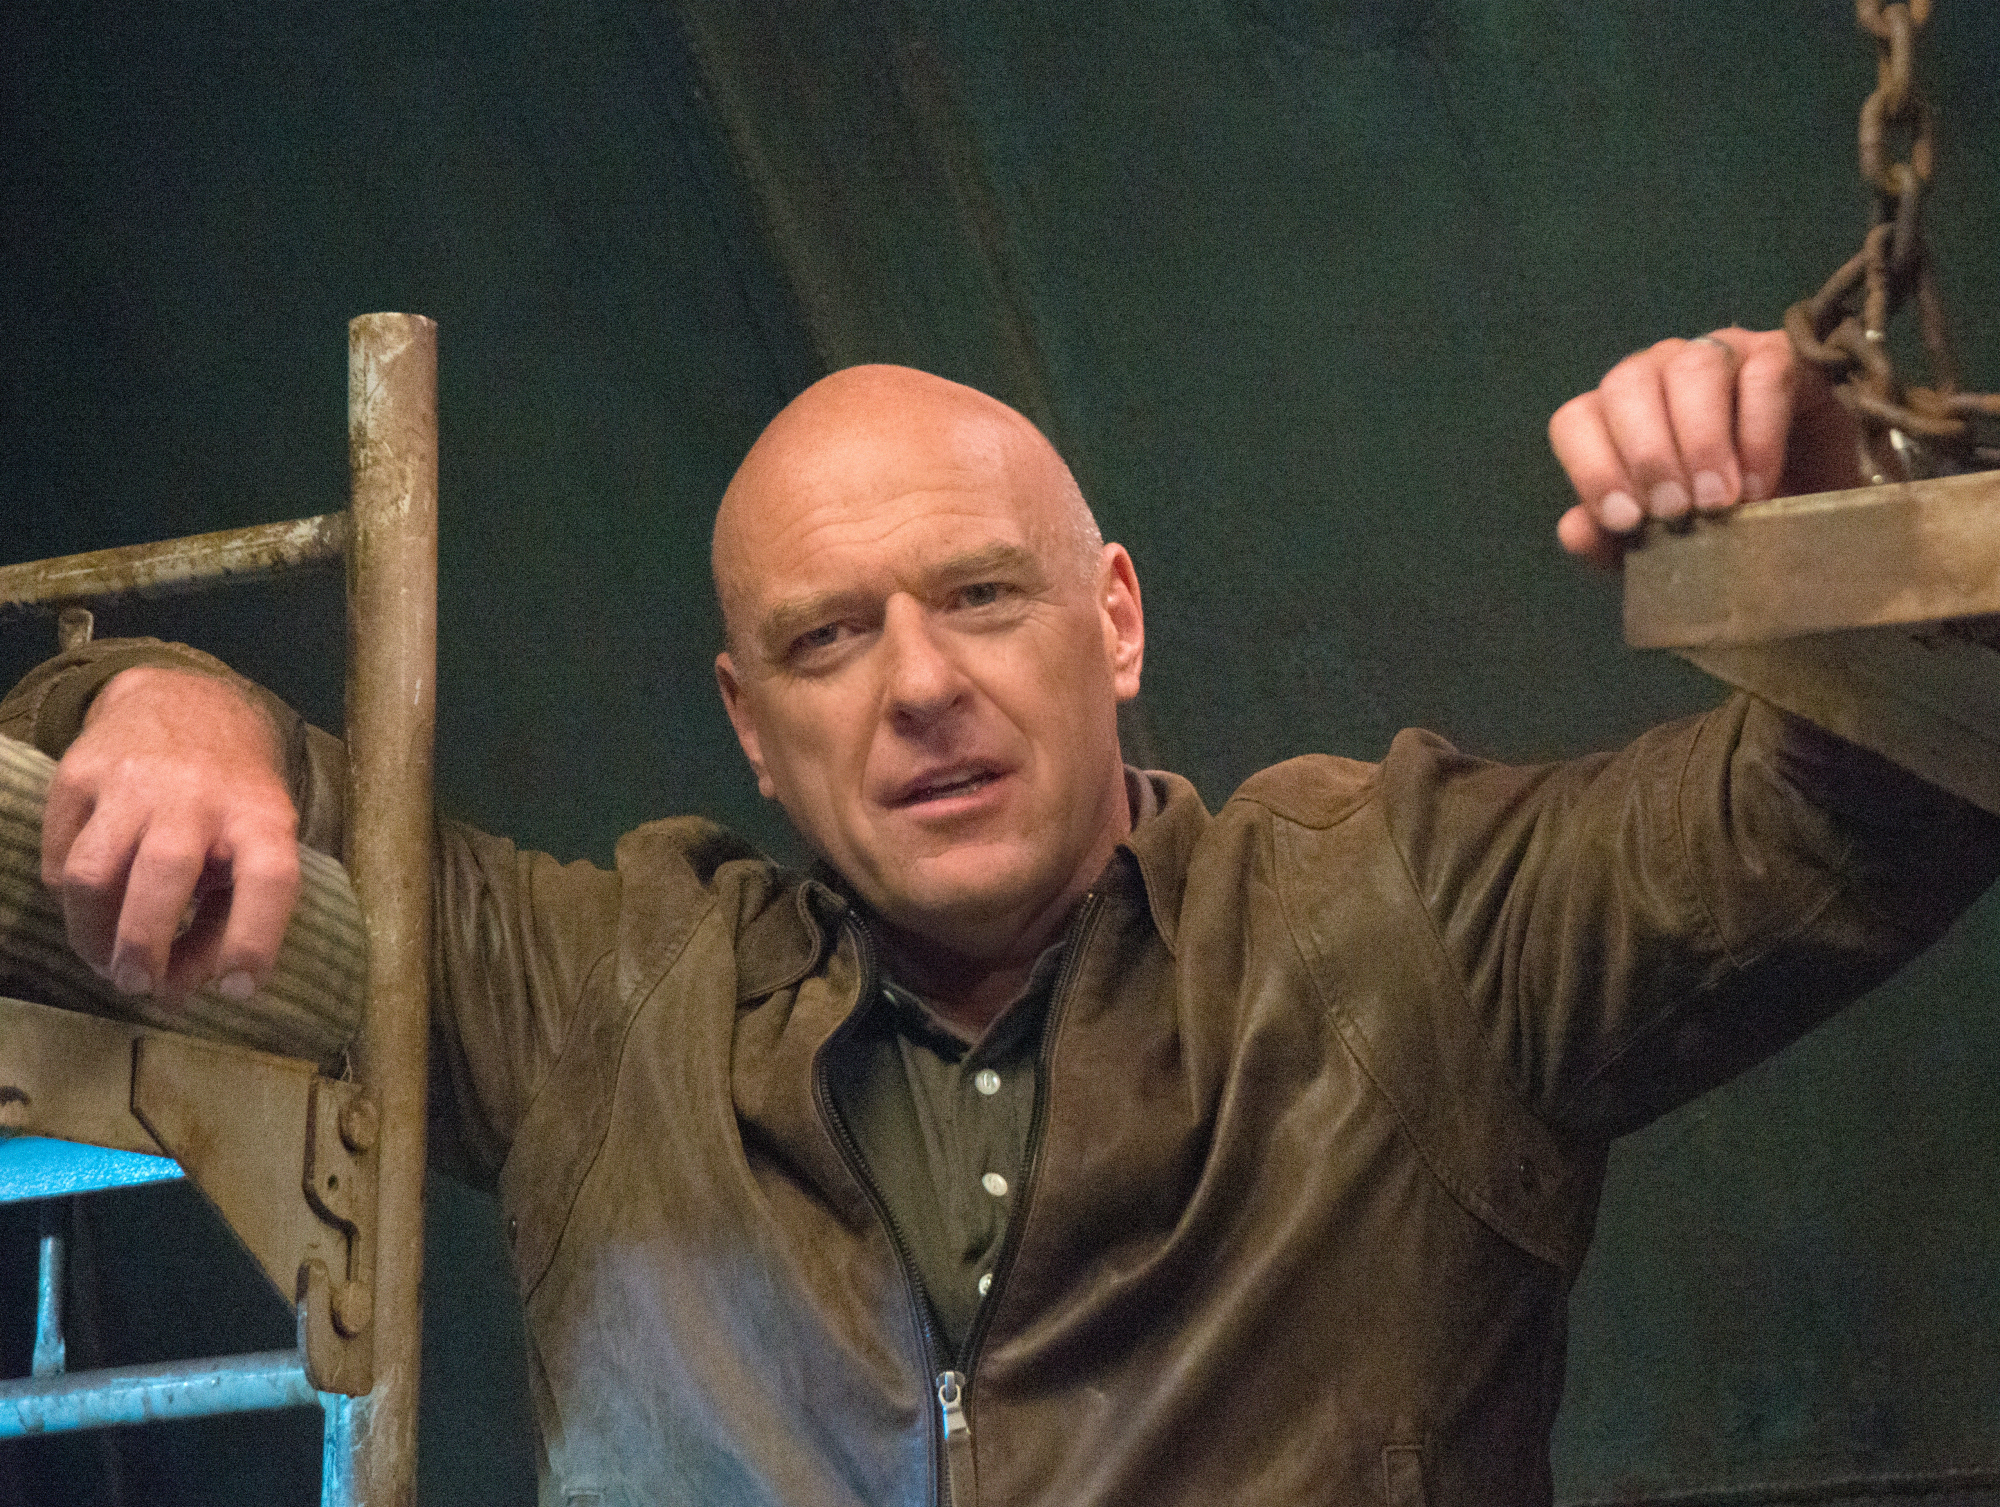 15. Dean Norris is from South Bend, Indiana.